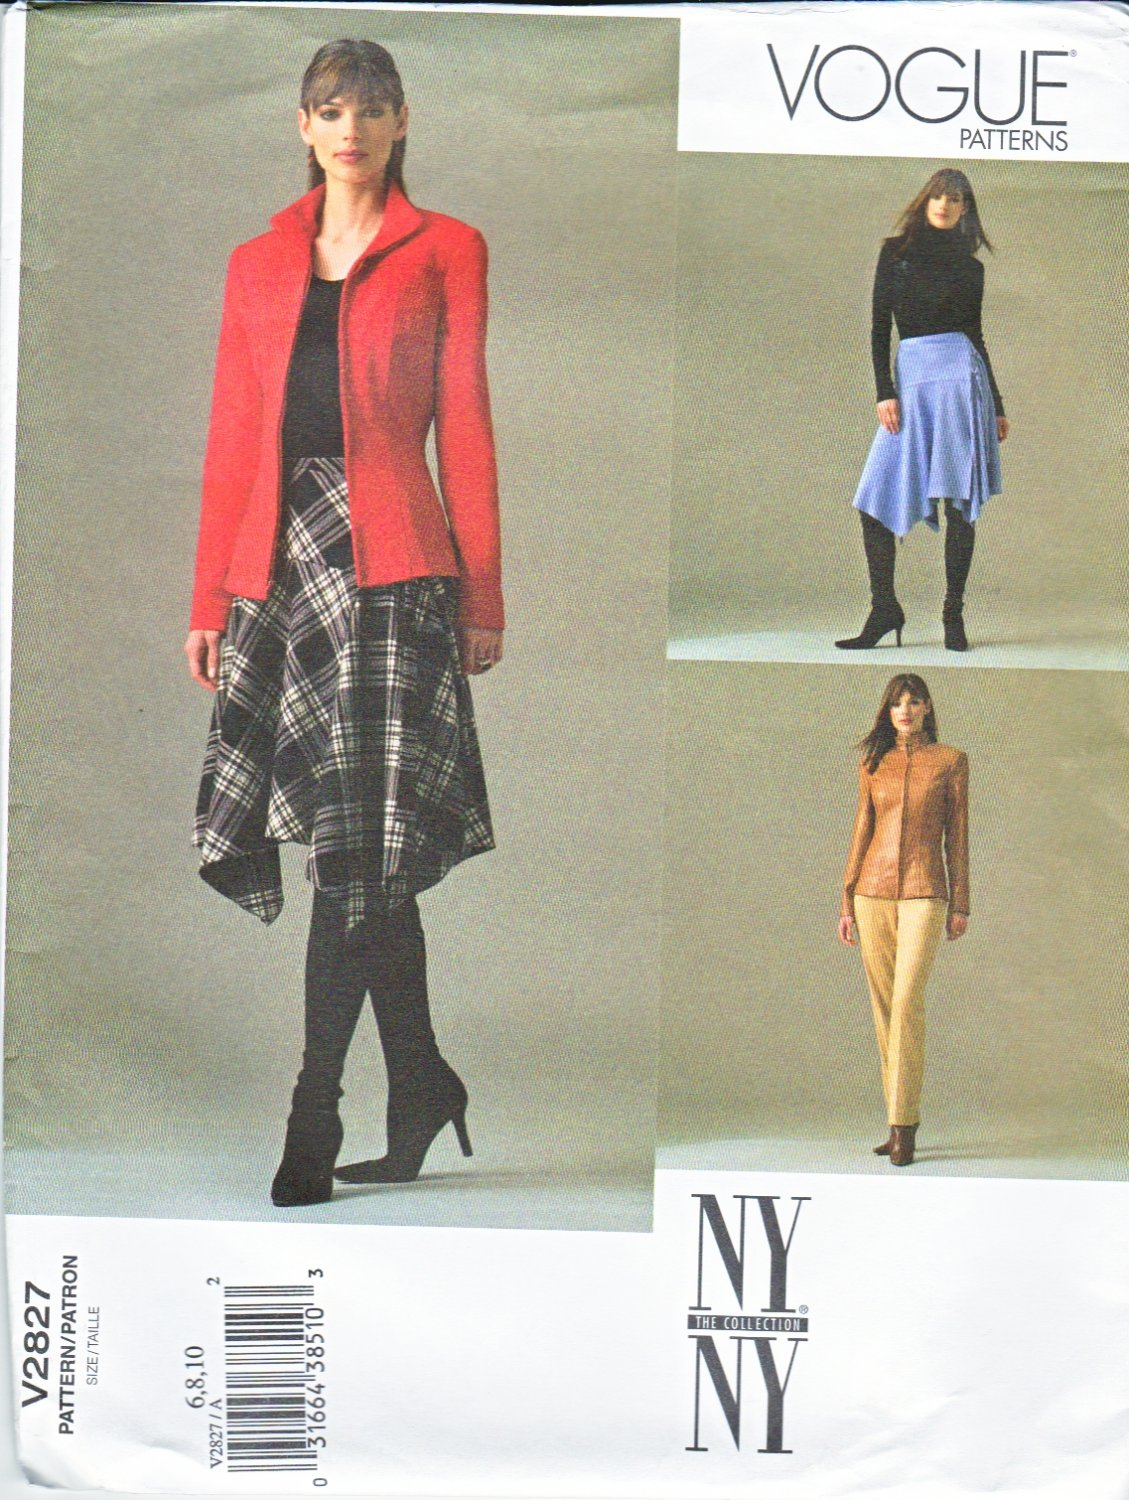 Vogue Sewing Pattern 2827 Misses Size 12-14-16 NY NY Jacket Wrap Skirt Pants